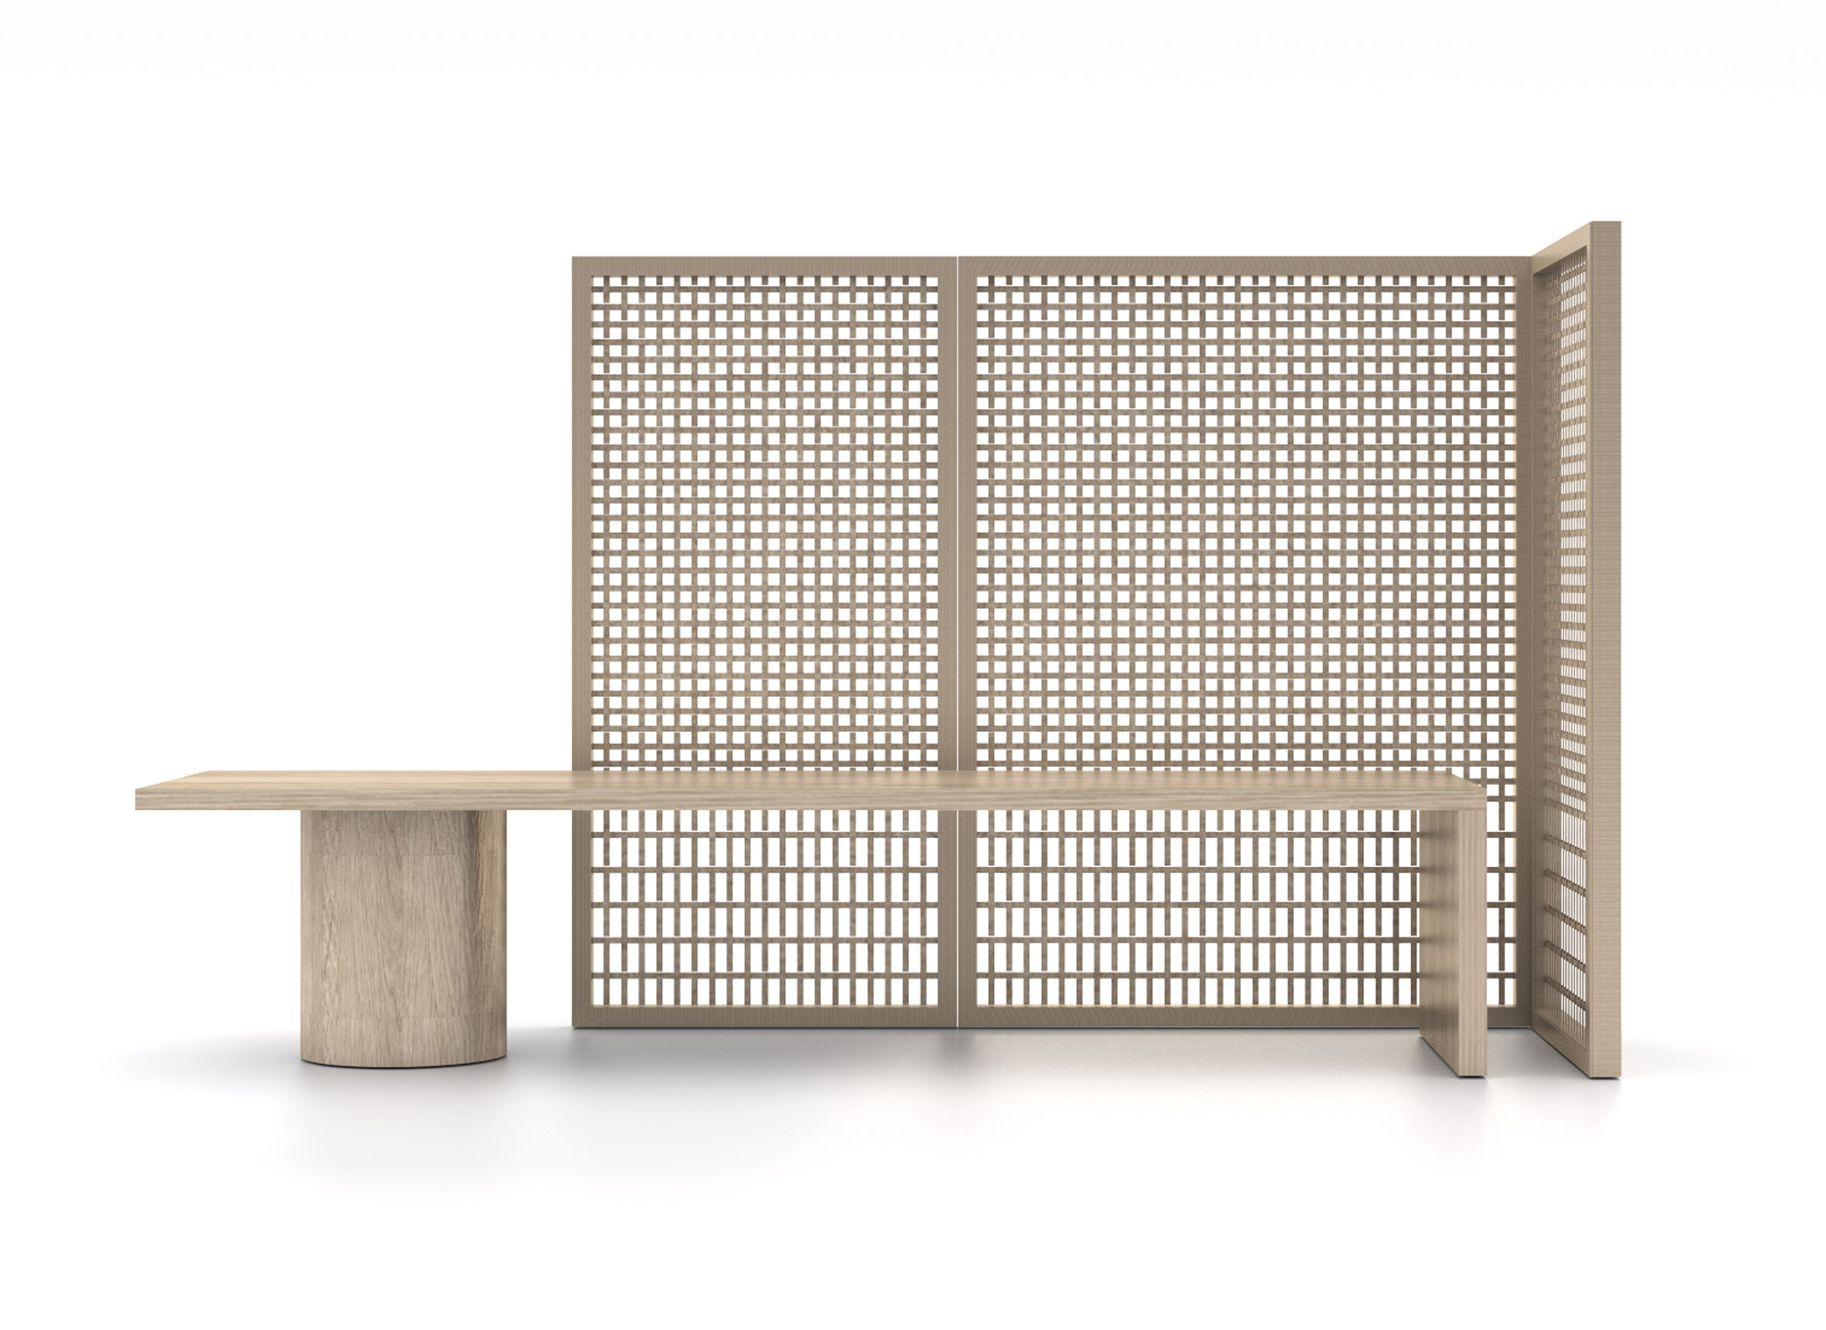 Shigeru Uchida s last work to be shown at Milan design week